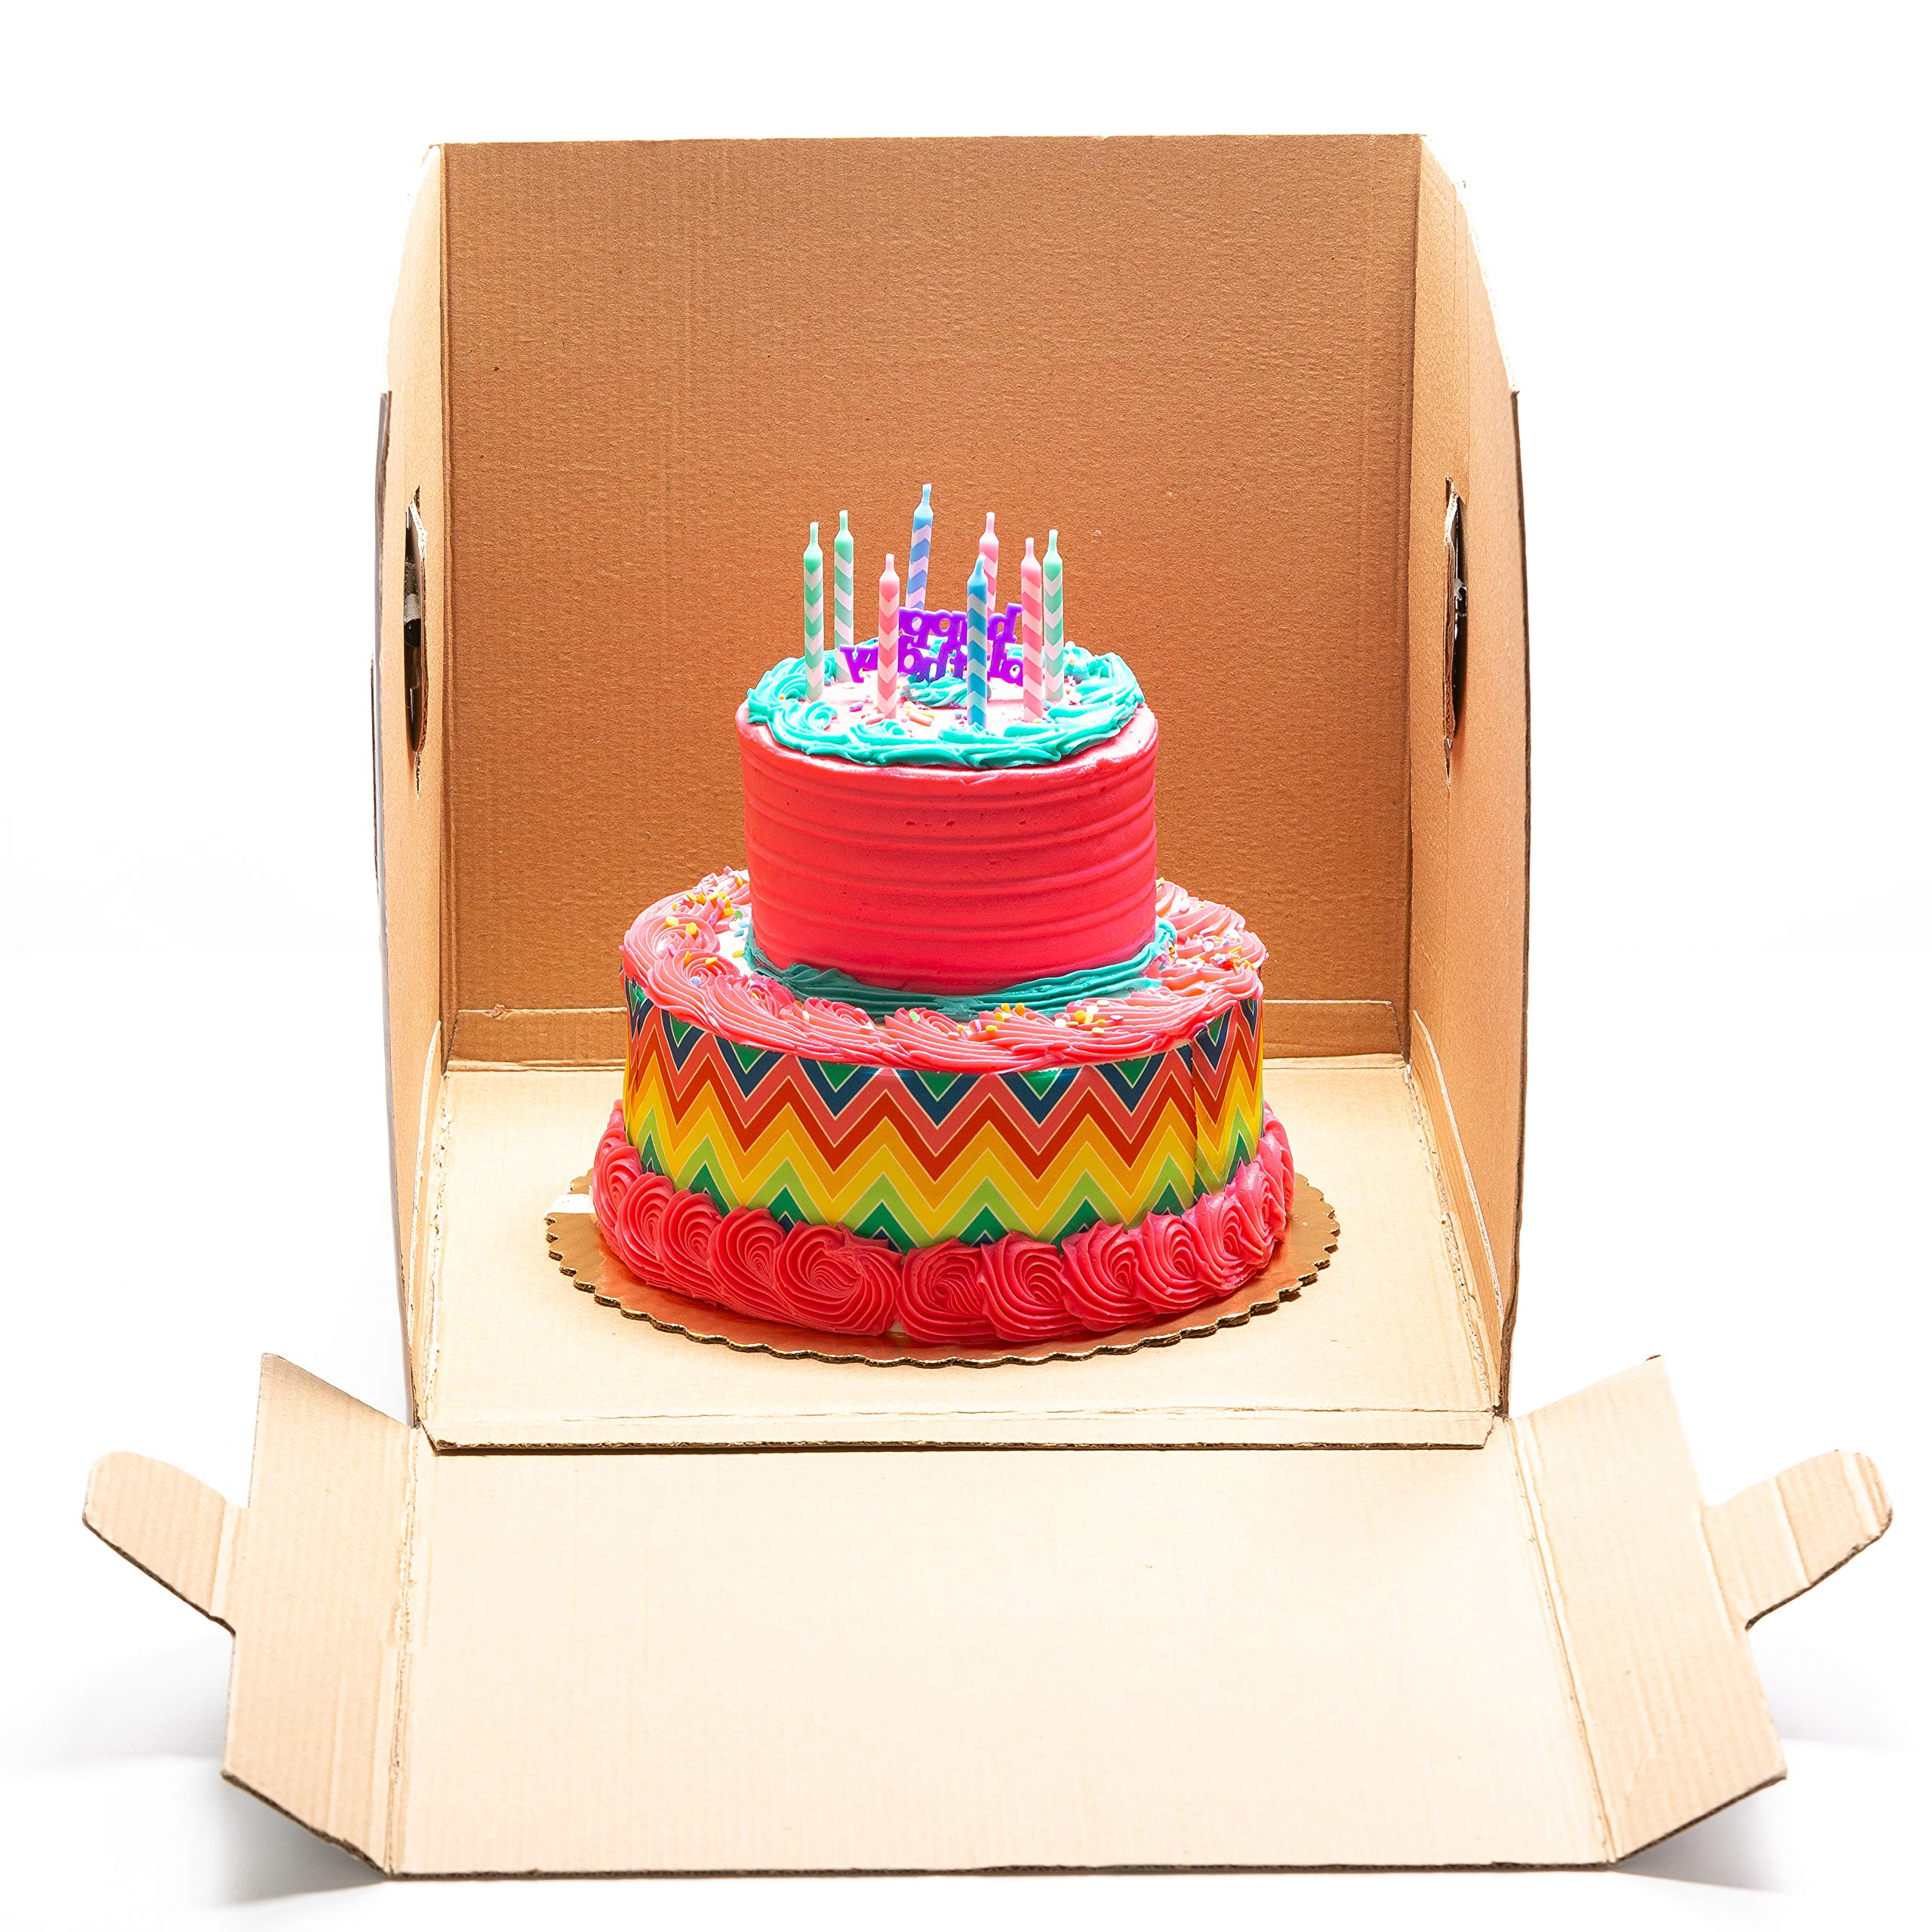 12x12x12 Tall Tiered Double Layer Carry Cake Box for Transport-3 pack (3, 12x12x12) by BeLuxe (Image #2)